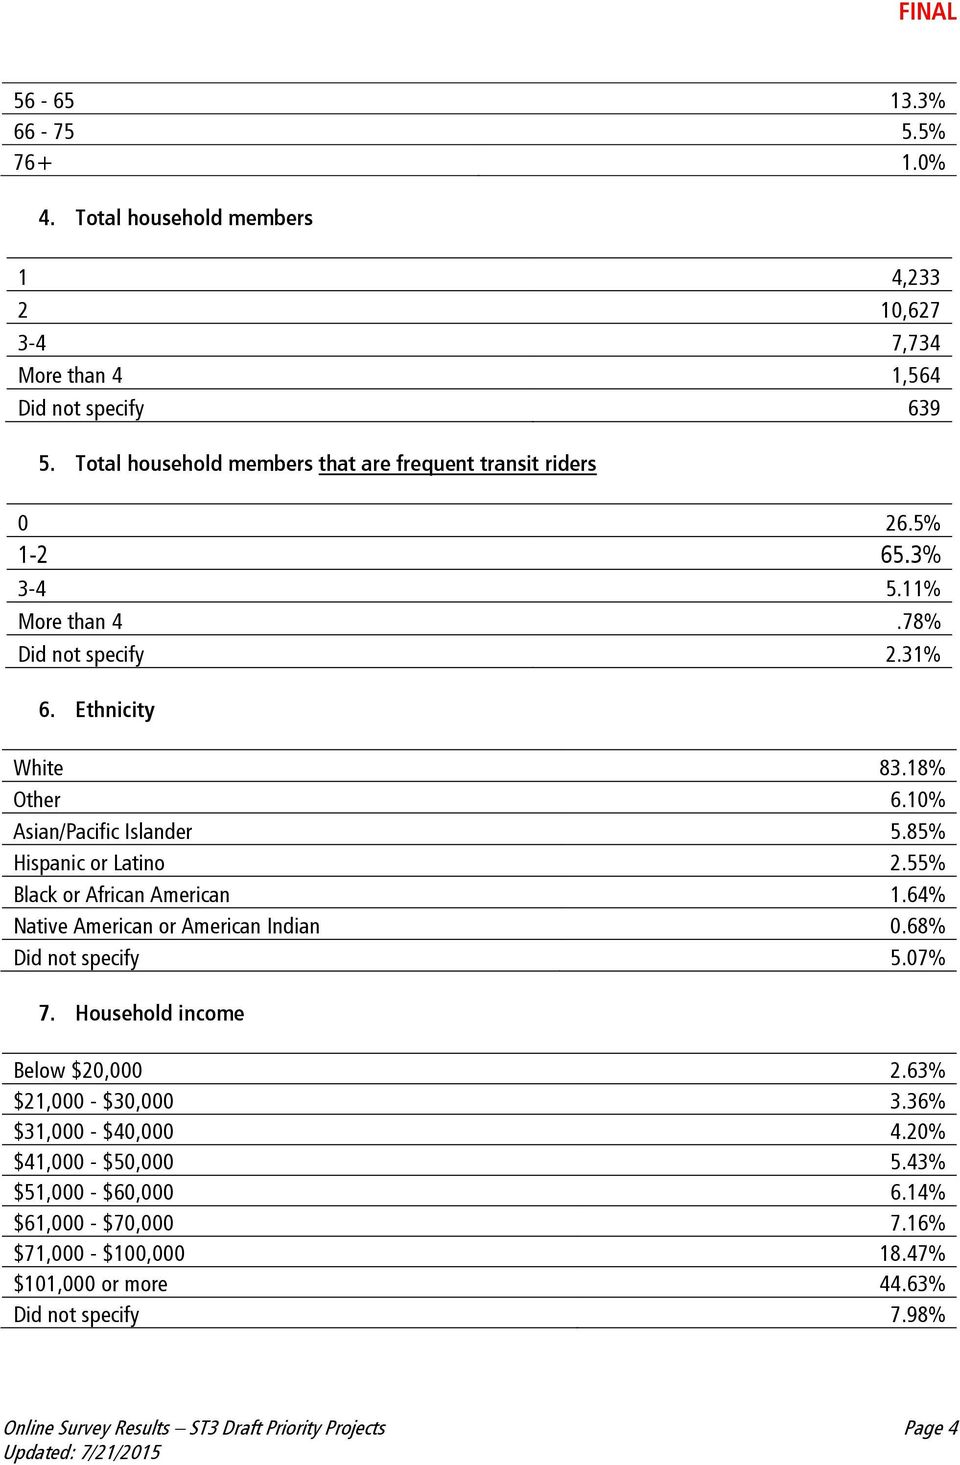 55% Black or African American 1.64% Native American or American Indian 0.68% Did not specify 5.07% 7. Household income Below $20,000 2.63% $21,000 - $30,000 3.